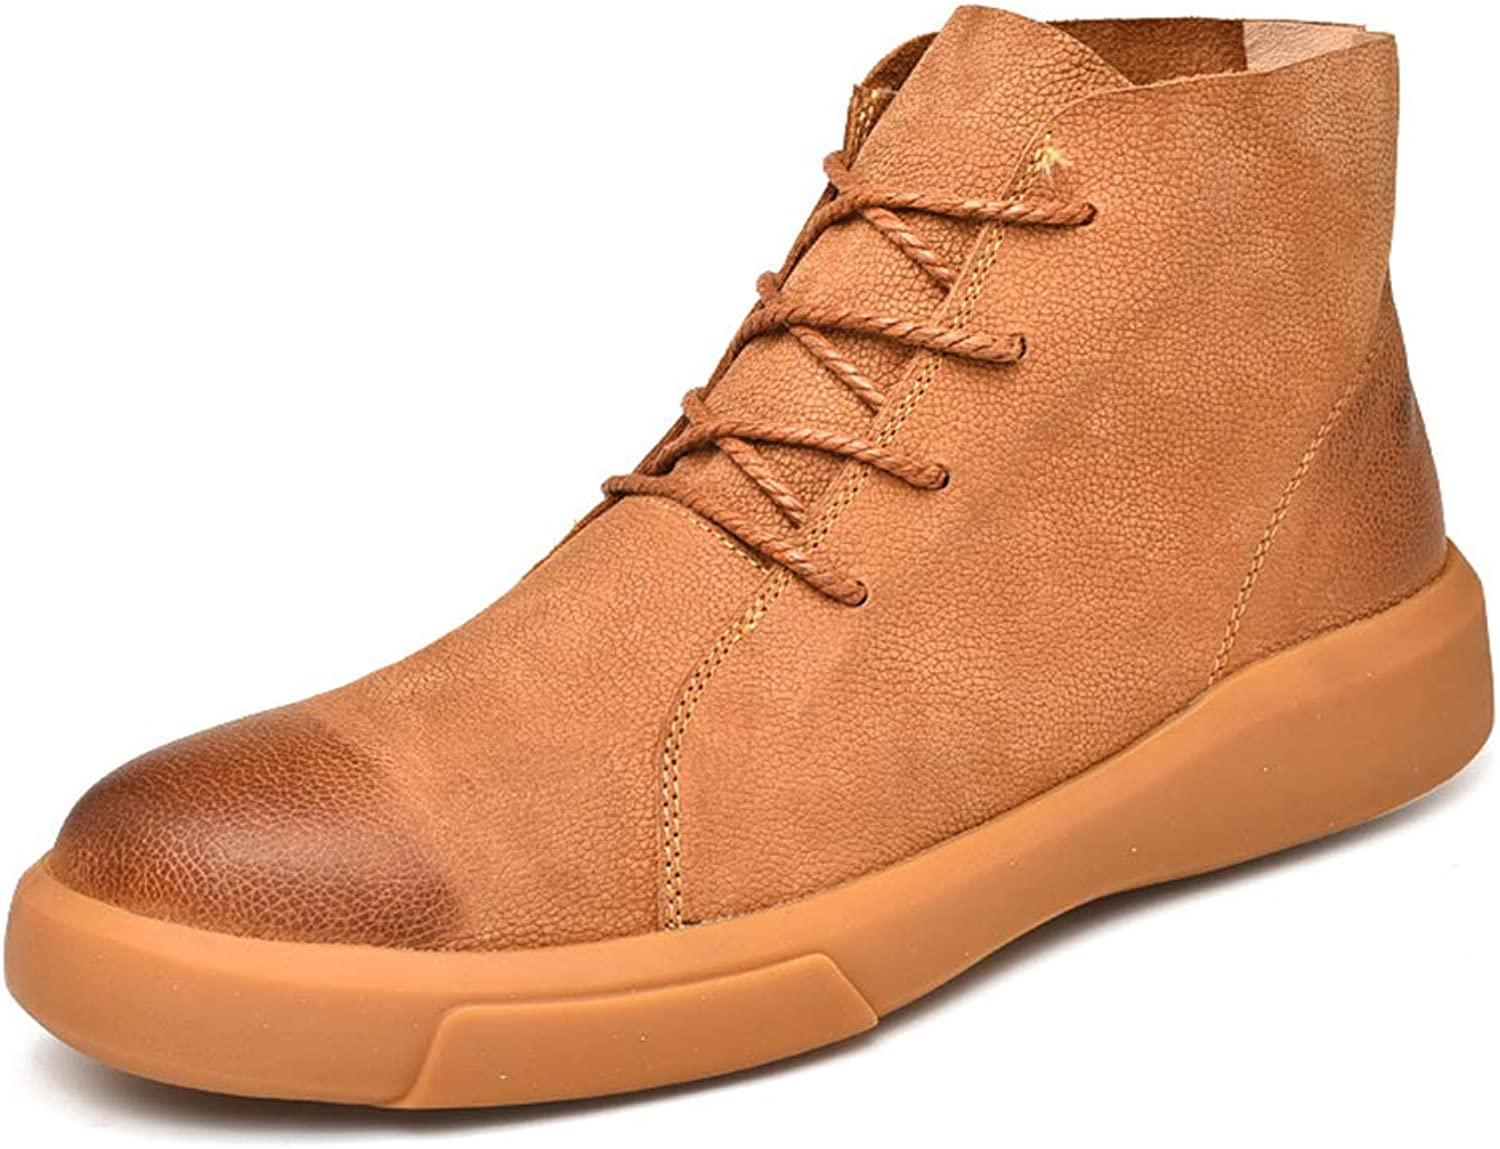 Phil Betty Mens Booties Lace Up Round-Toe Wear-Resistant Casual Comfortable Martin Boots